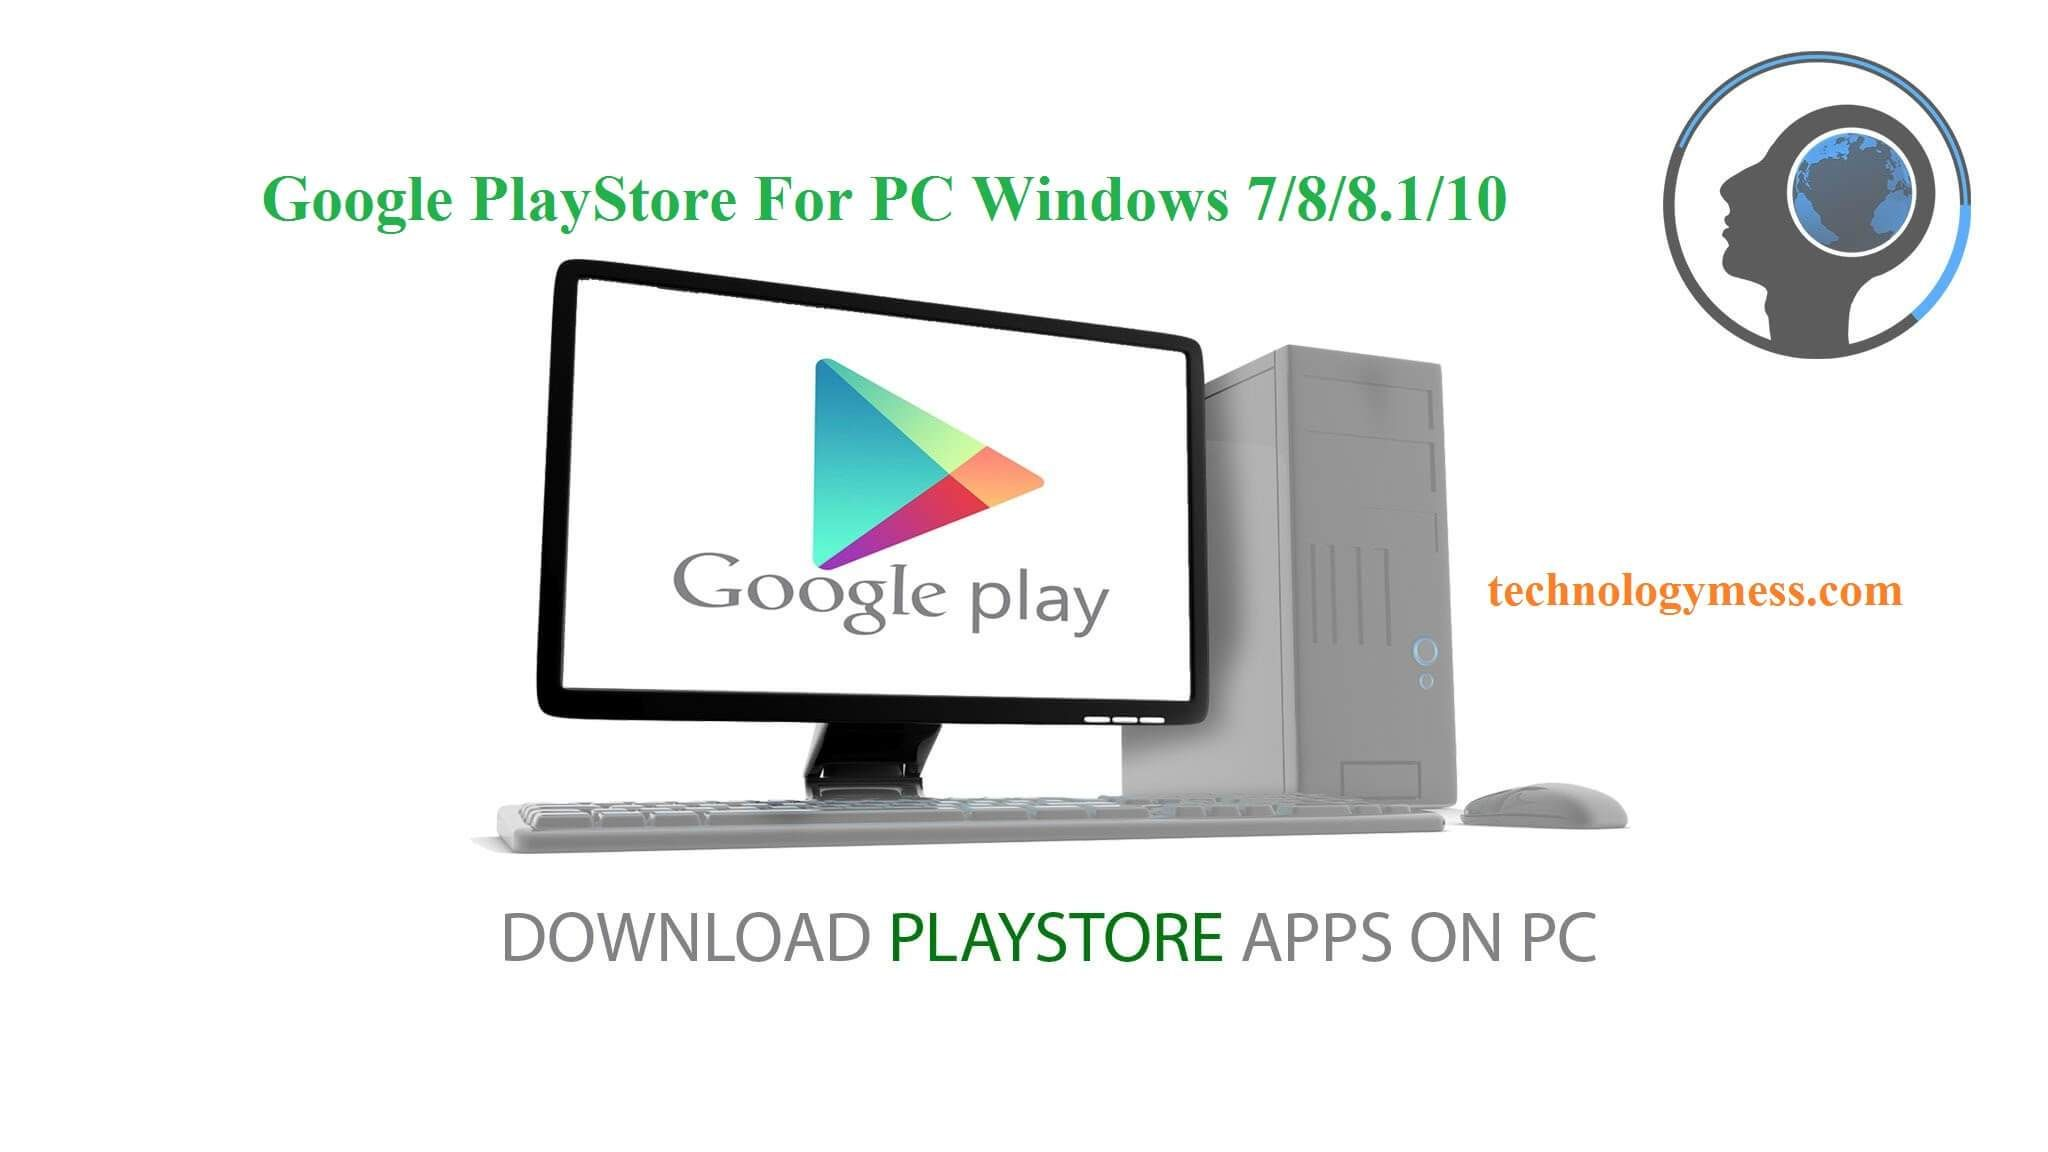 DOWNLOAD GOOGLE PLAY STORE FOR PC WINDOWS 7,8,8.1,10